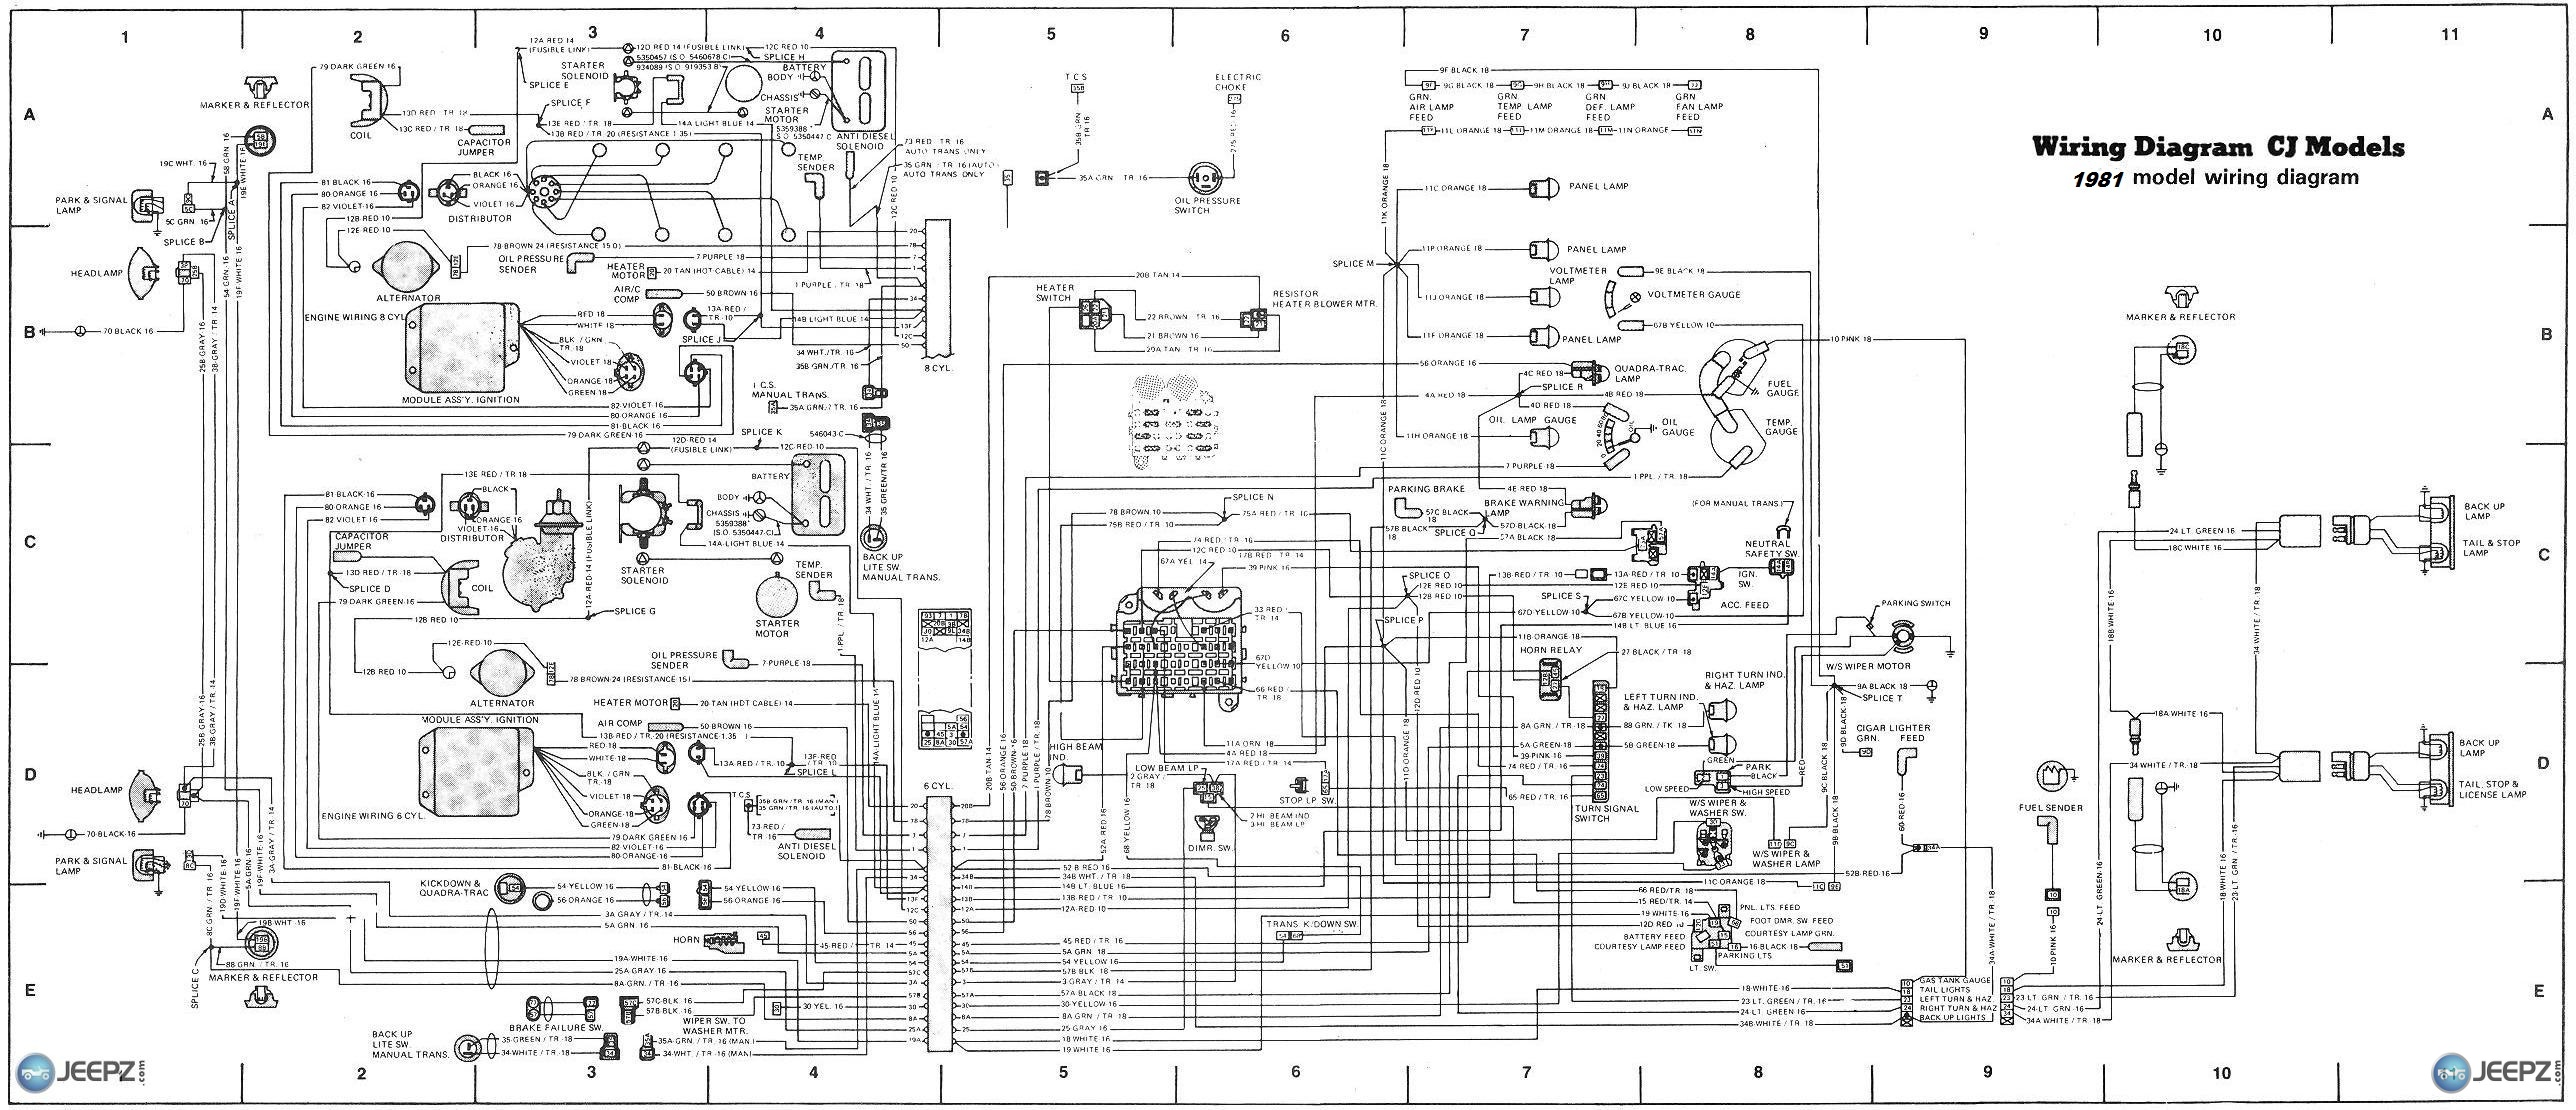 CJ-7 Wire Diagram